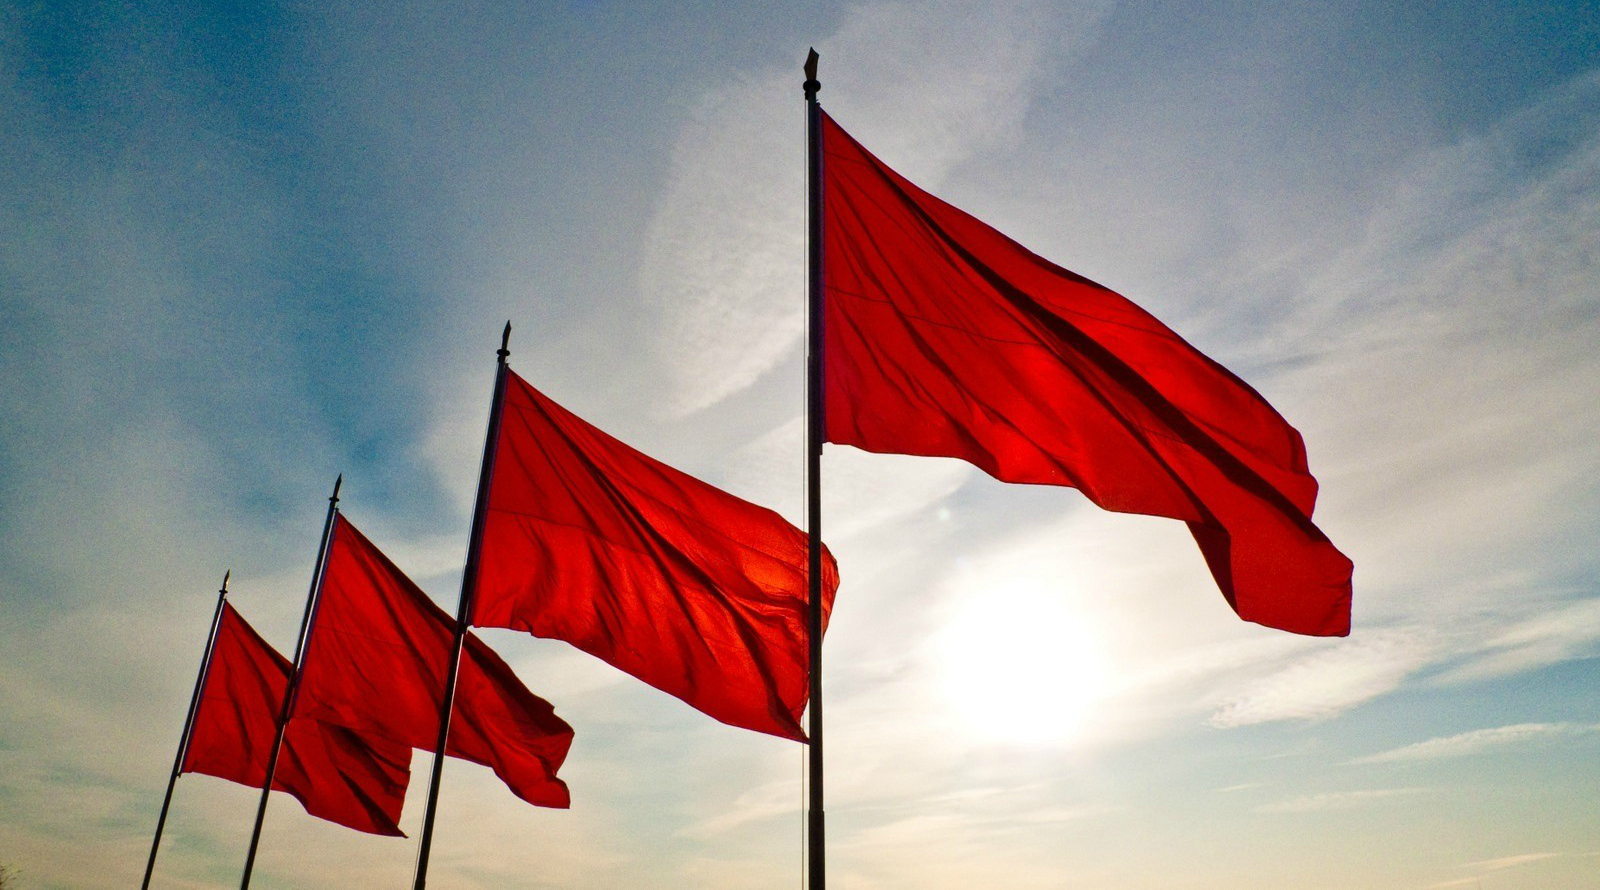 Startup due diligence: how to spot red flags – part 1